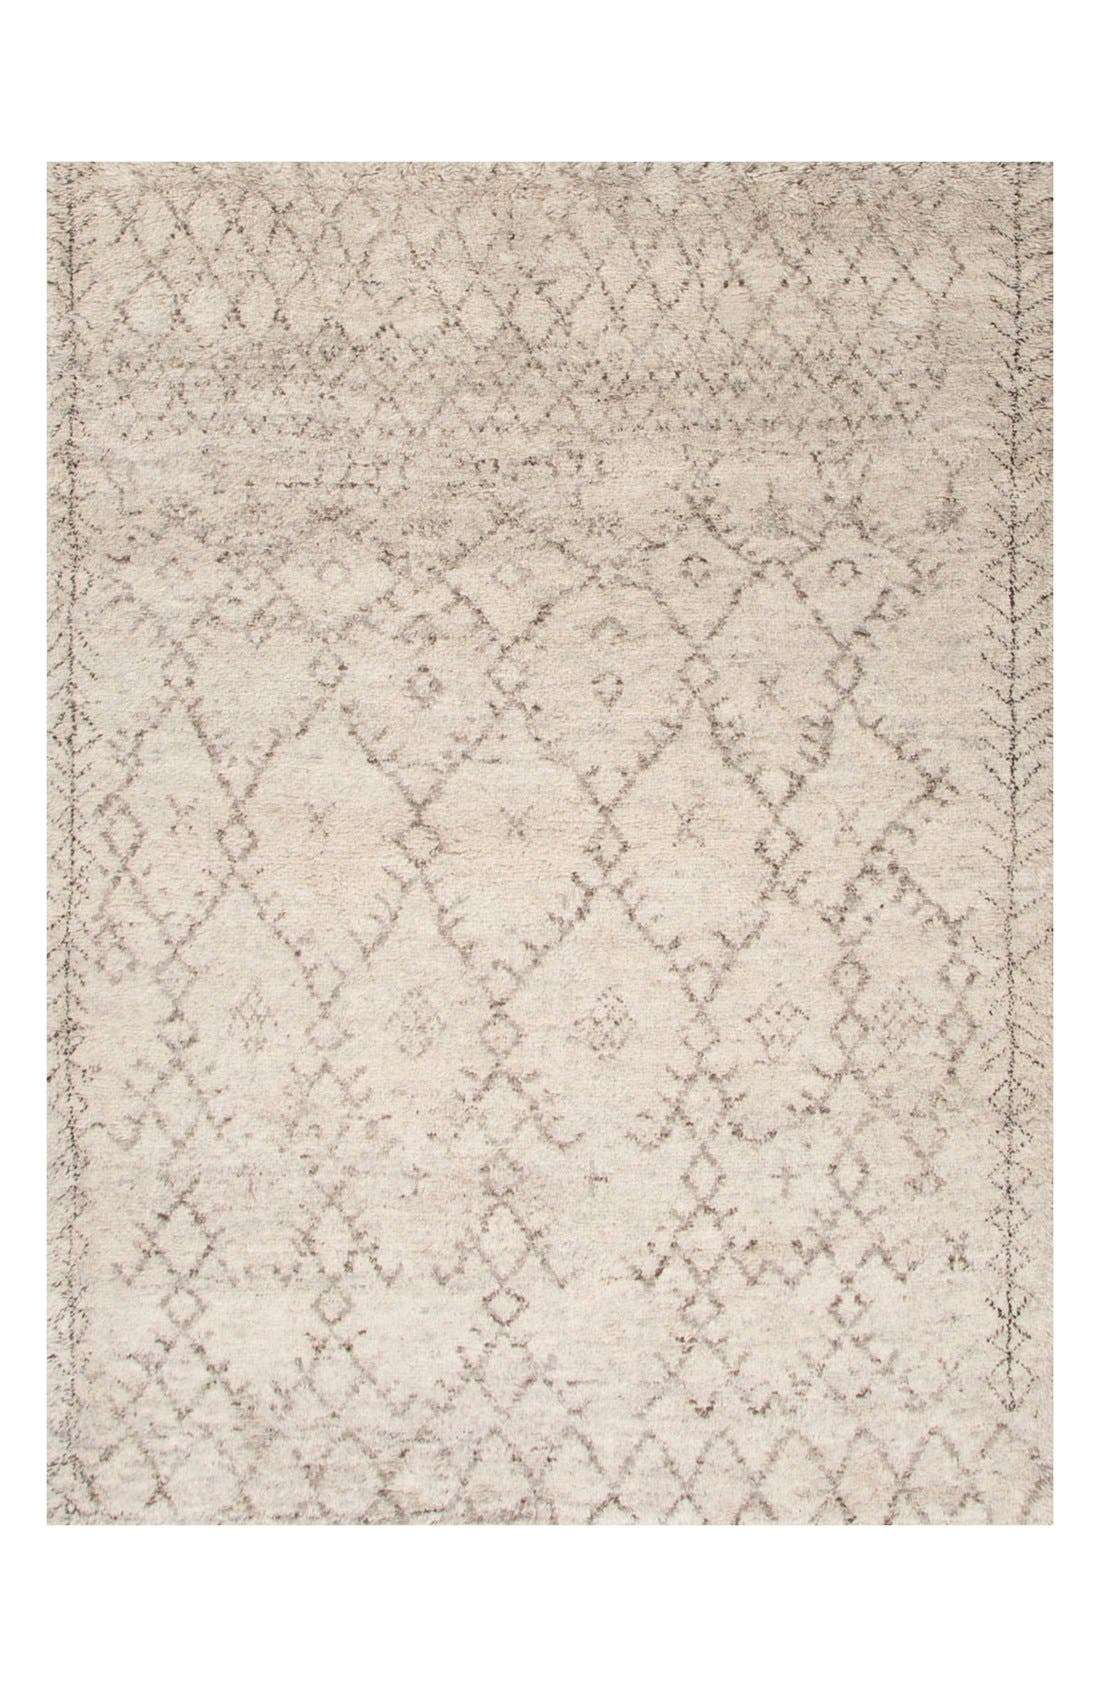 'Zola' Wool Area Rug,                             Main thumbnail 1, color,                             Ivory/ Grey